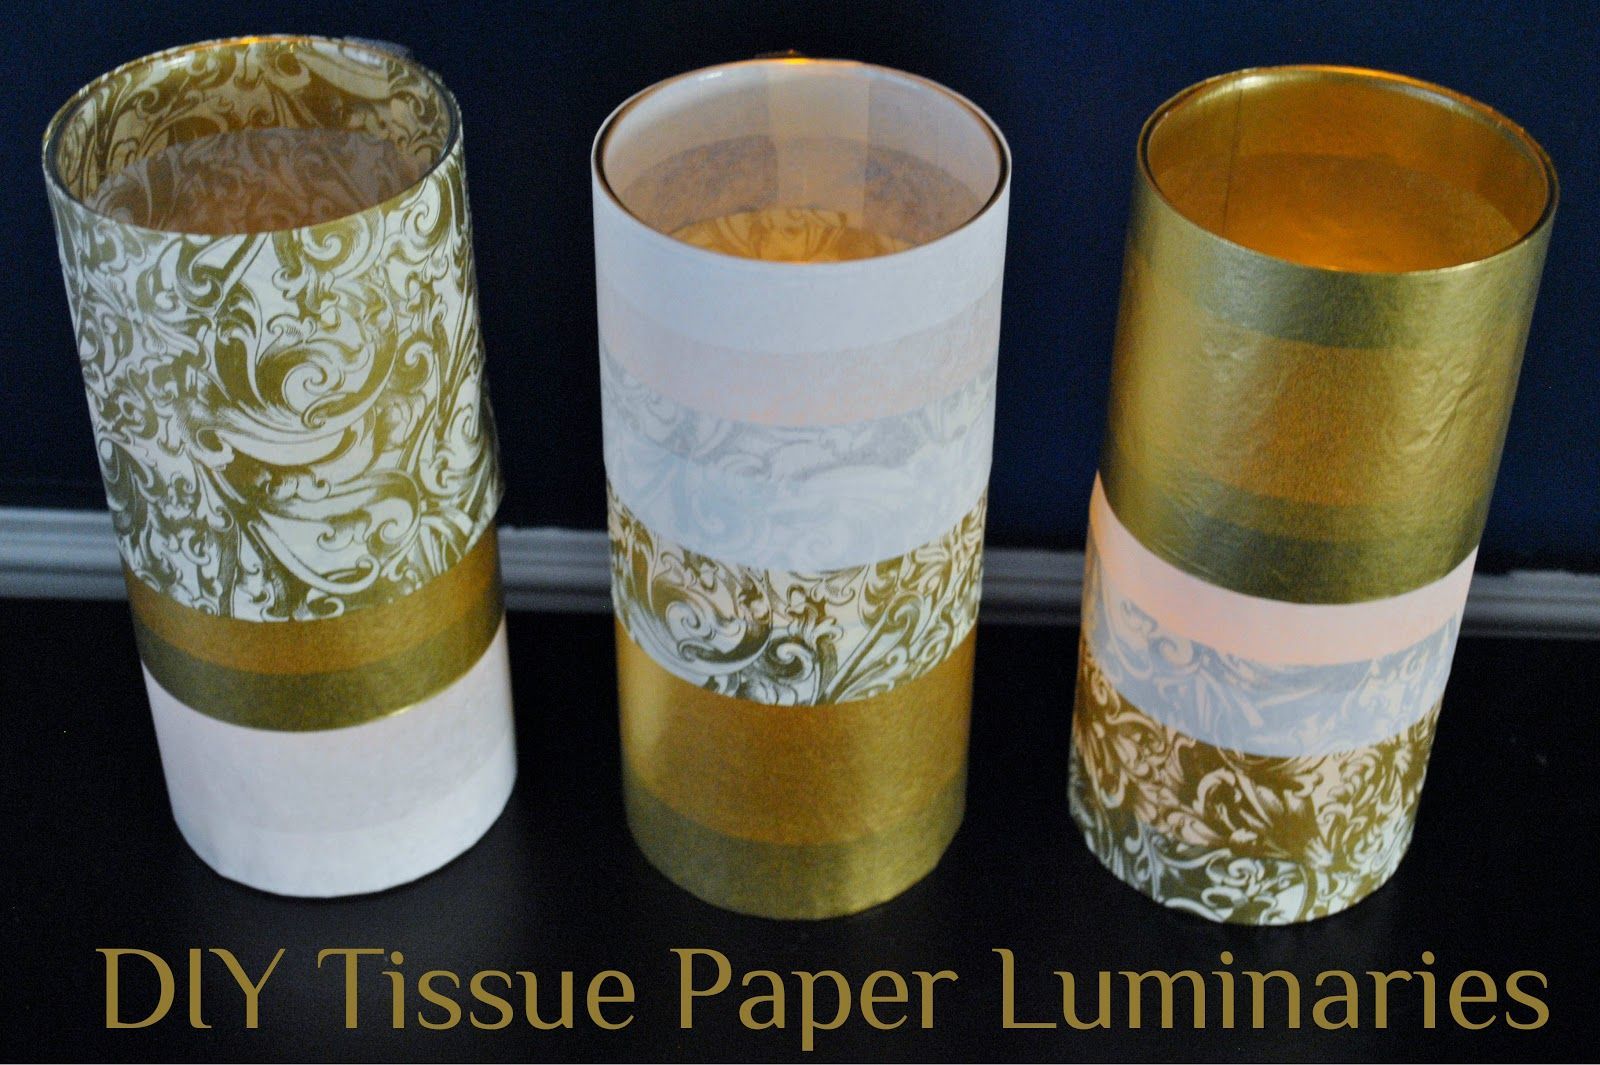 DIY Tissue Paper Luminaries - Looks so easy that I could even do it!